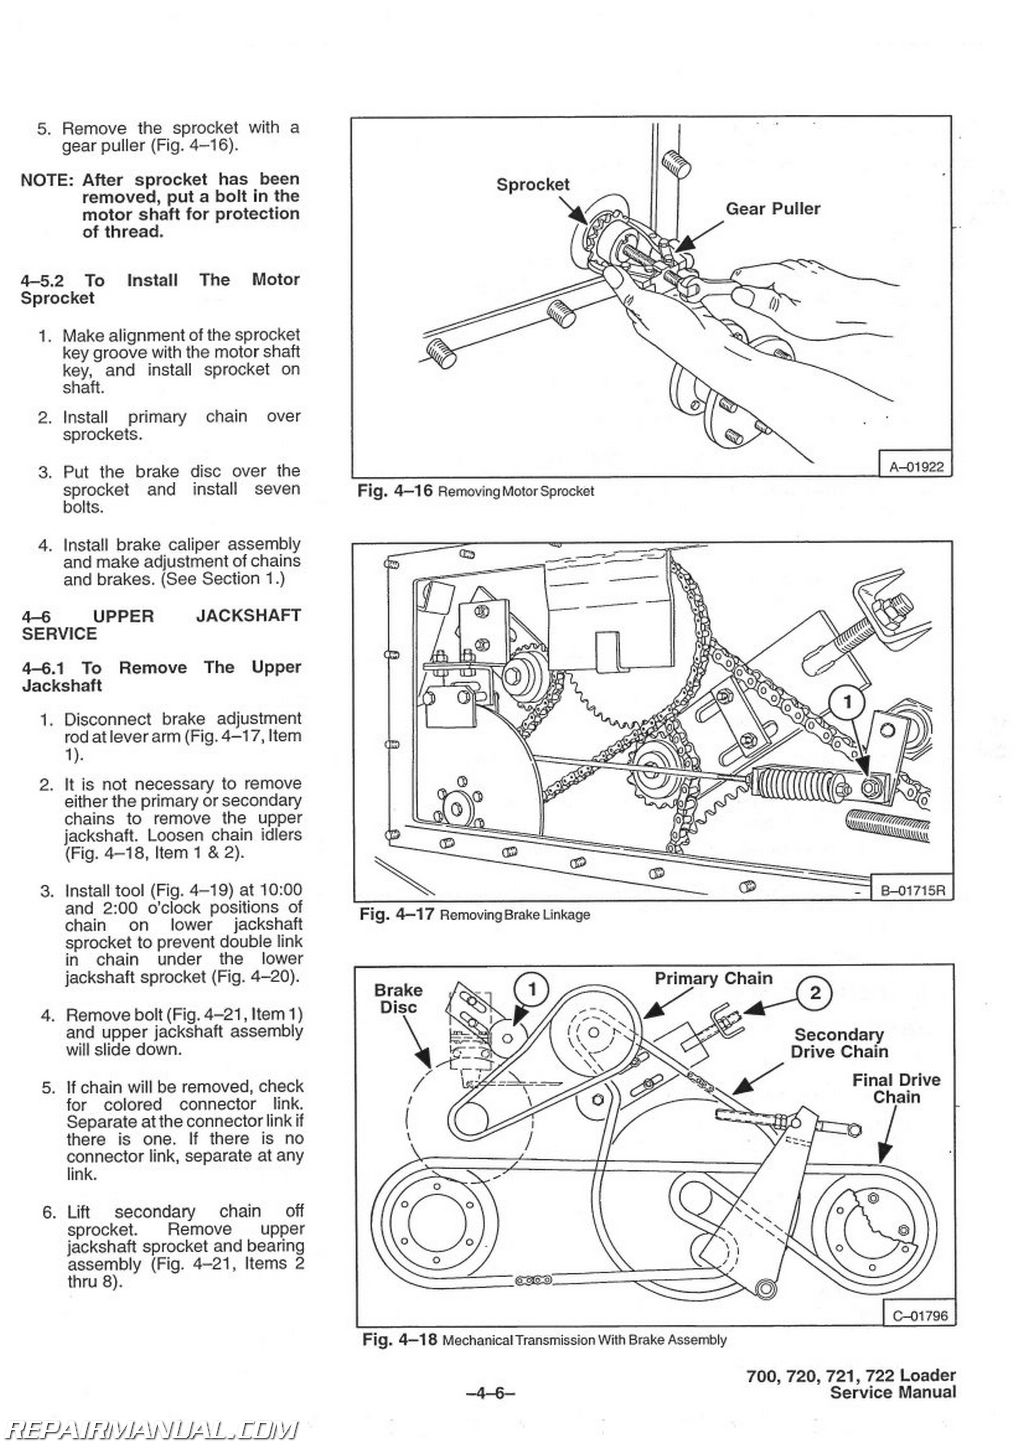 bobcat 700 720 721 722 skid steer service manual Bobcat Hydraulic Schematic Bobcat Hydraulic Schematic #53 bobcat hydraulic schematic